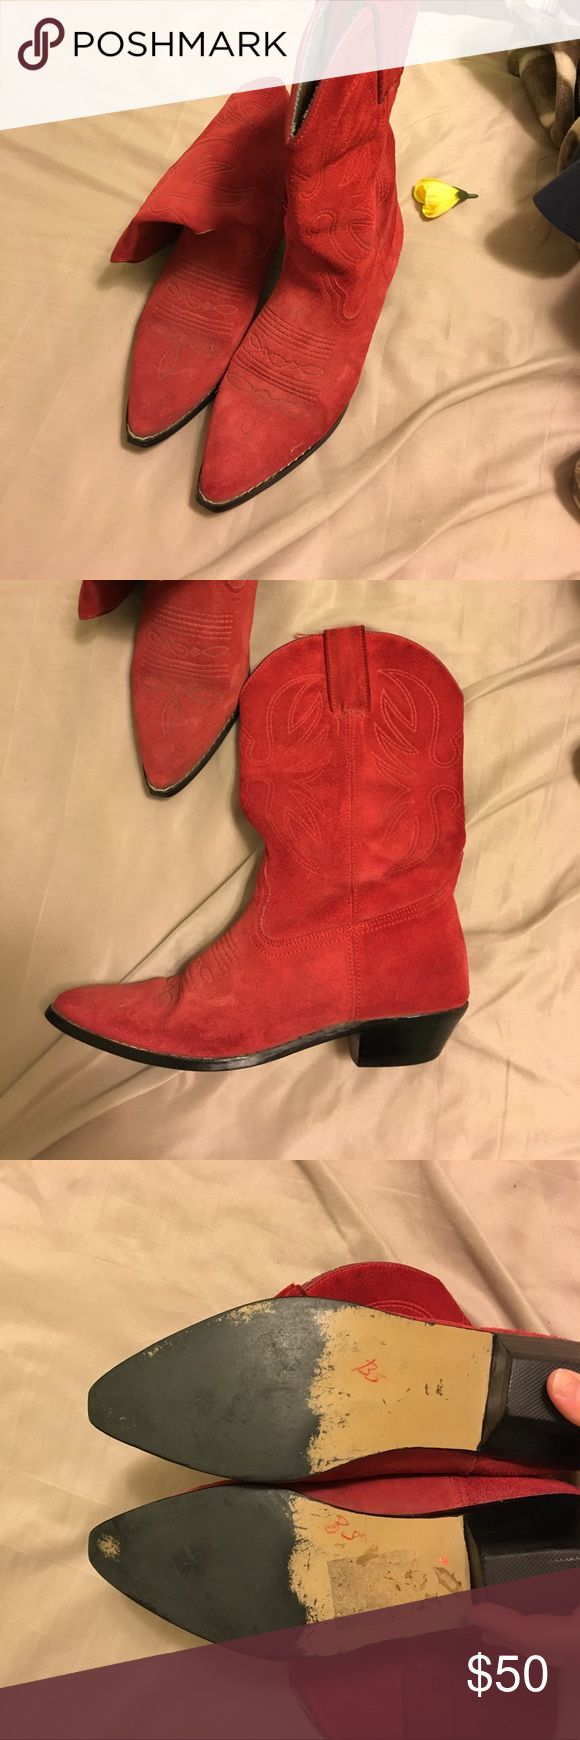 Red Leather Cowboy Boots 8.5 These unique boots have plenty of life left in them and are ready to go dancing! Shoes Heeled Boots